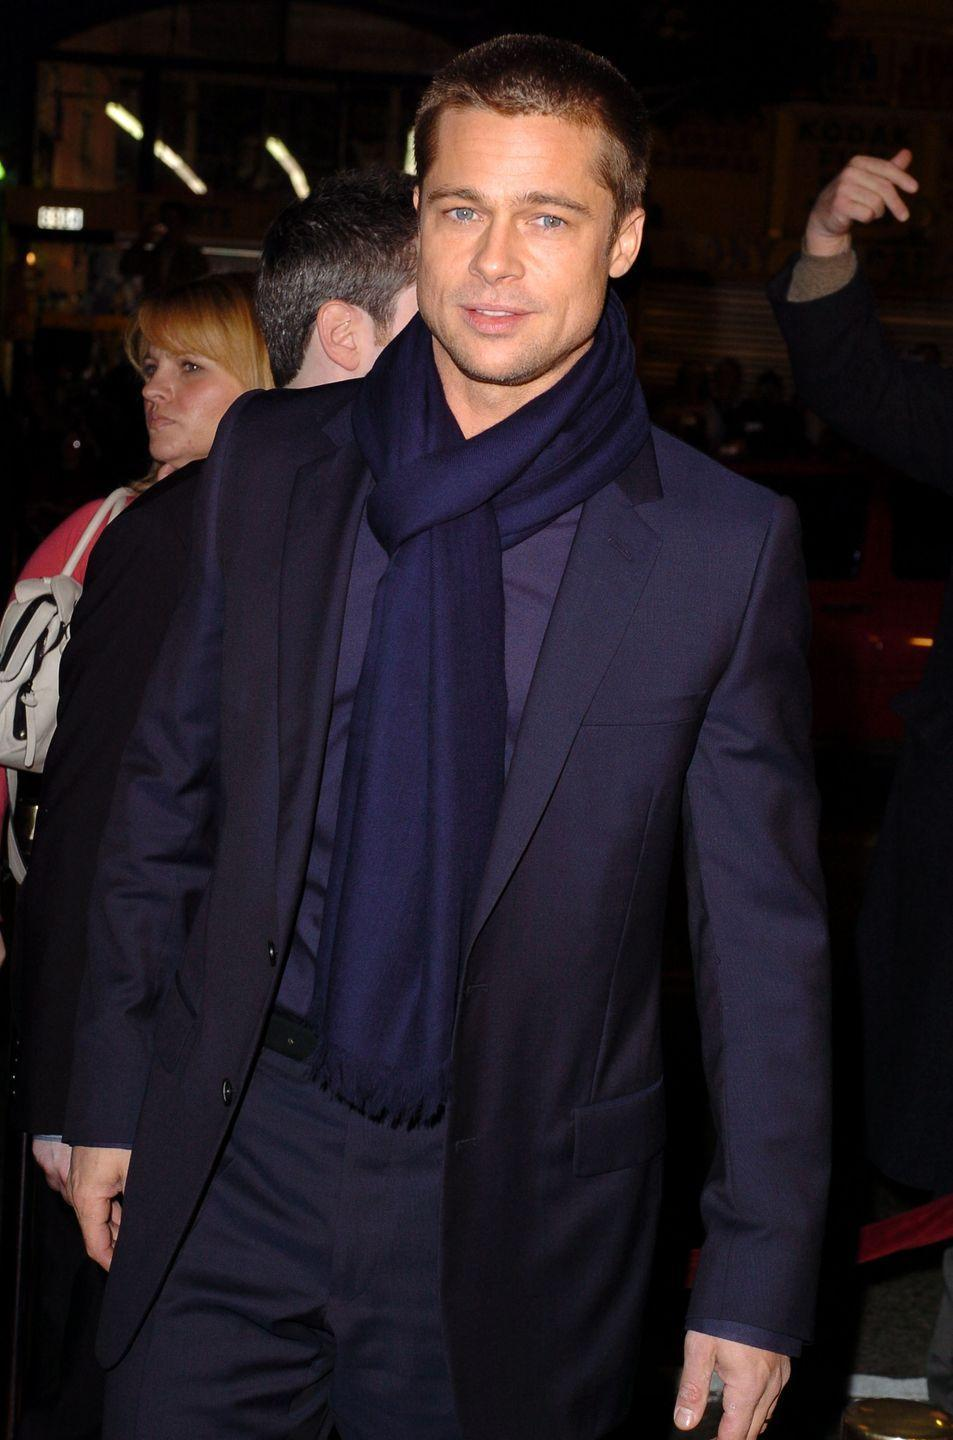 <p>Pitt starred in two blockbusters, Troy and Ocean's 12, the year he turned 40. He also started filming Mr. and Mrs. Smith, the movie on which he met Angelina Jolie. </p>